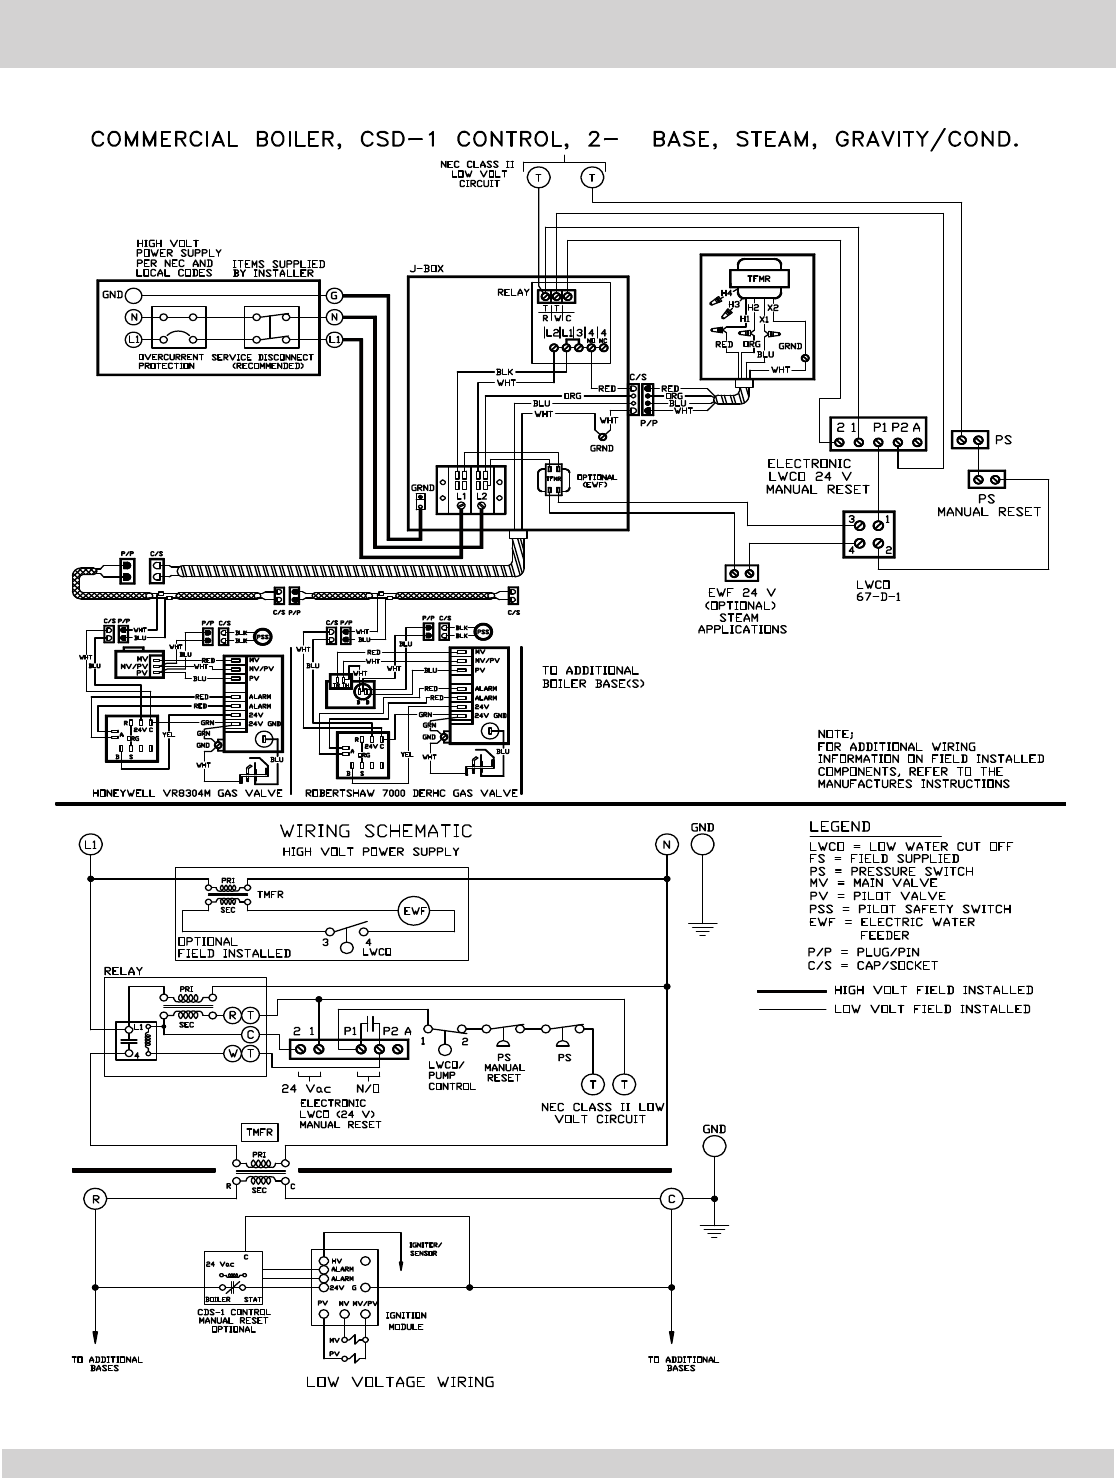 hight resolution of 3 electrical wire diagrams csd 1 steam boilers